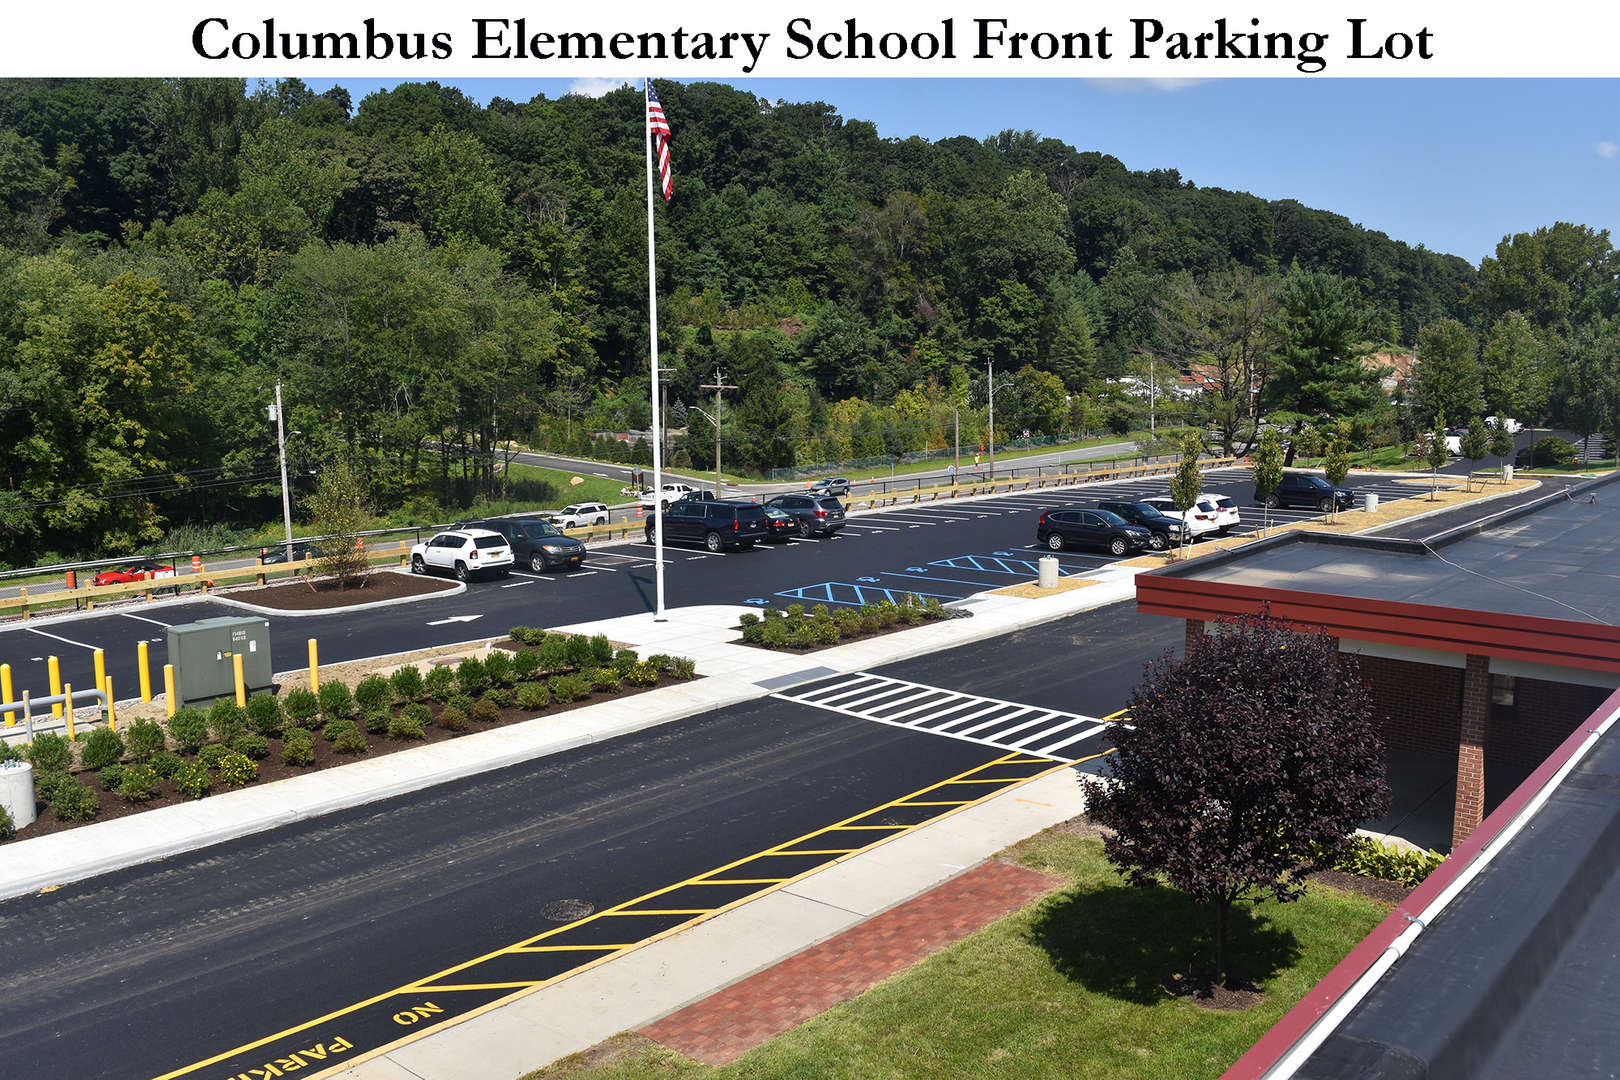 View from roof of new parking lot at Columbus Elementary